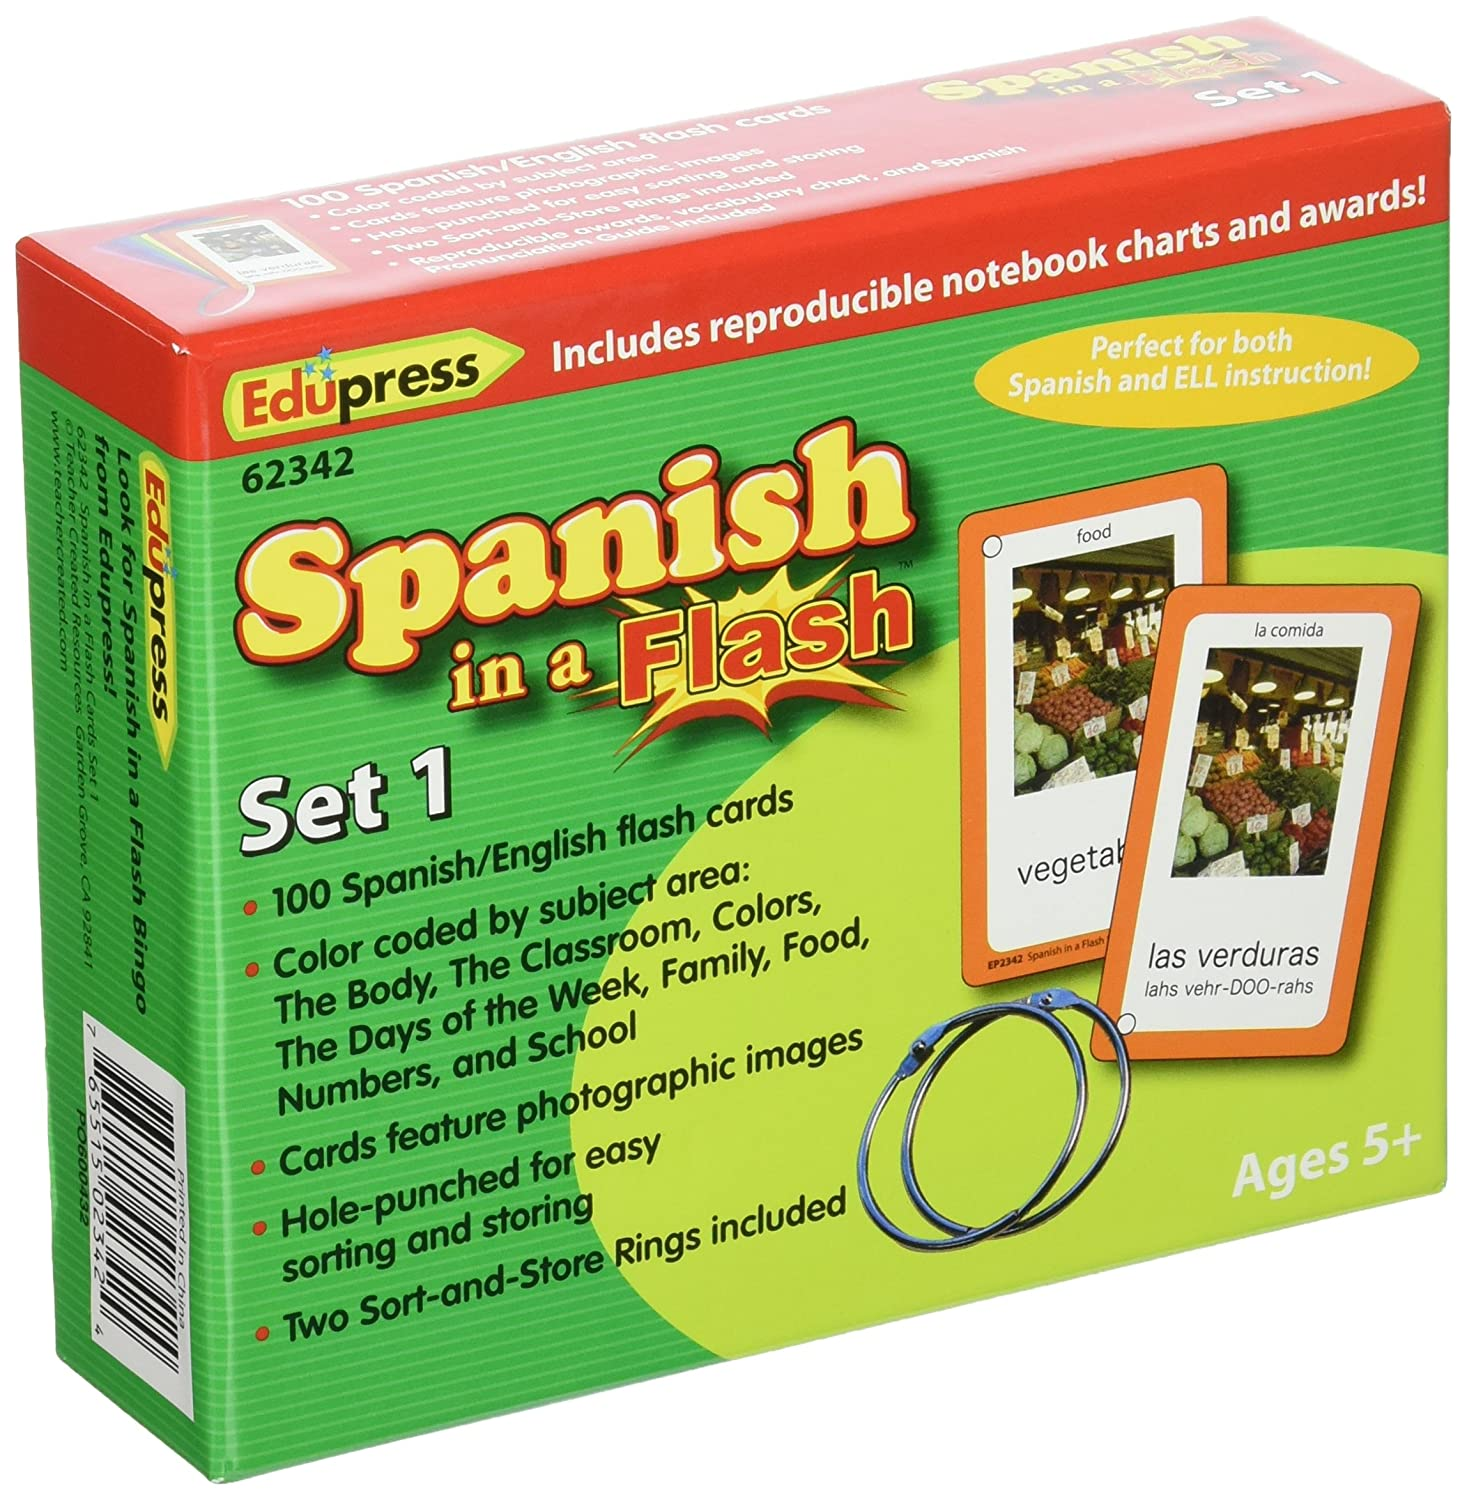 Amazon.com : Edupress Spanish in a Flash Cards Set 1 (EP62342 ...